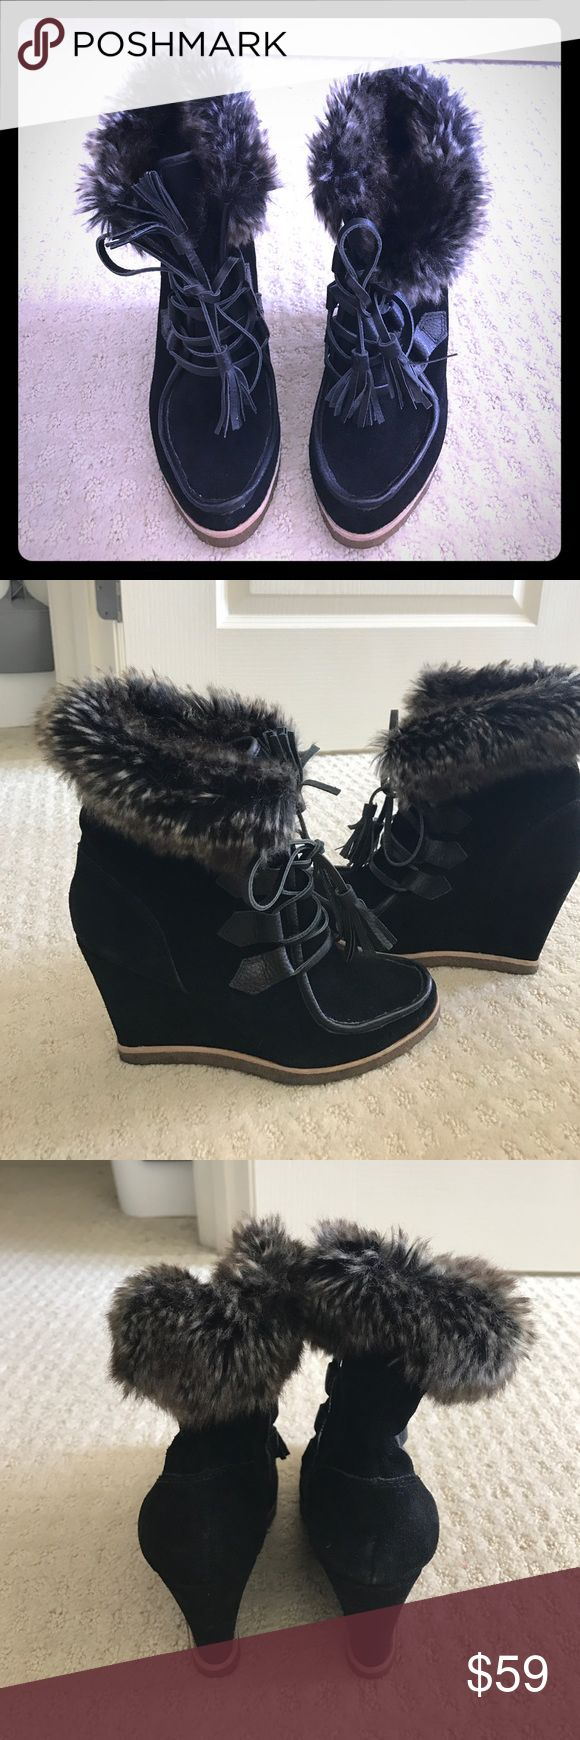 """Faux Fur Booties Super chic dark brown faux fur real black leather ankle booties, about 4"""" platform heels, brand new from Off 5th Saks, bought as is so there were minor spots on the suede but hard to see when wearing Splendid Shoes Ankle Boots & Booties"""